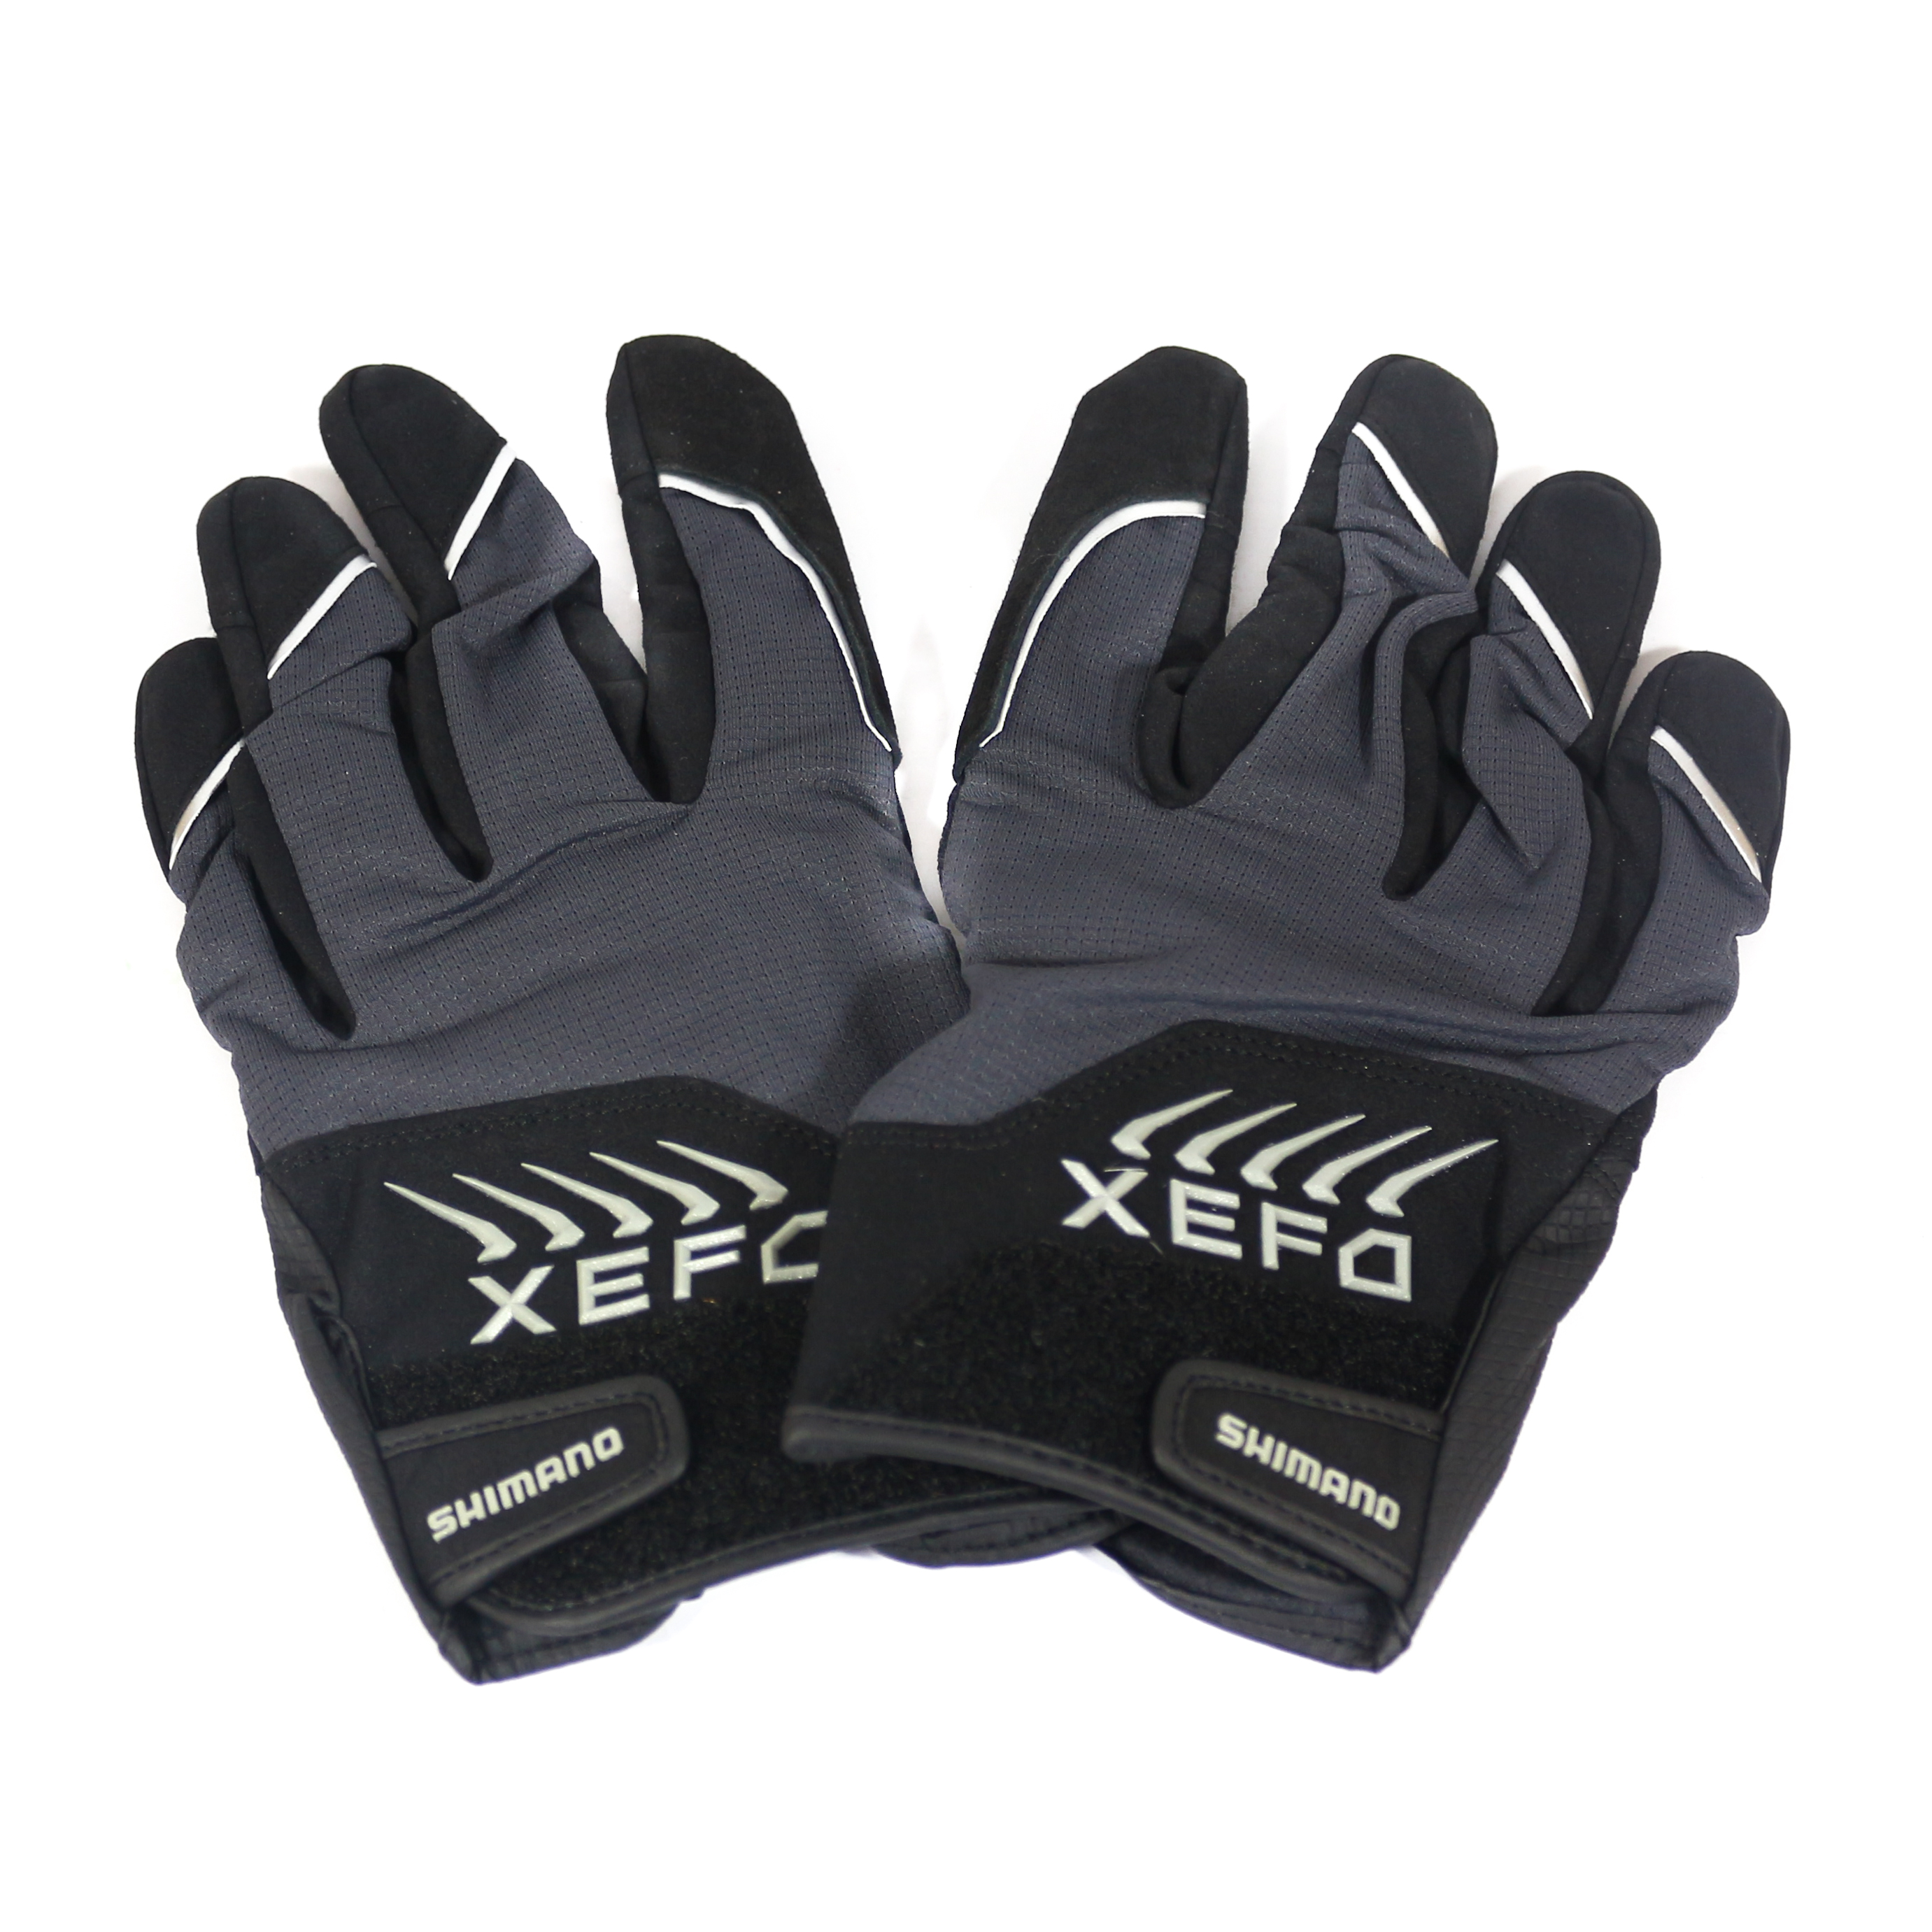 Shimano GL-249R Gloves XEFO Rock Traverse Casting Black Size XL (2426)